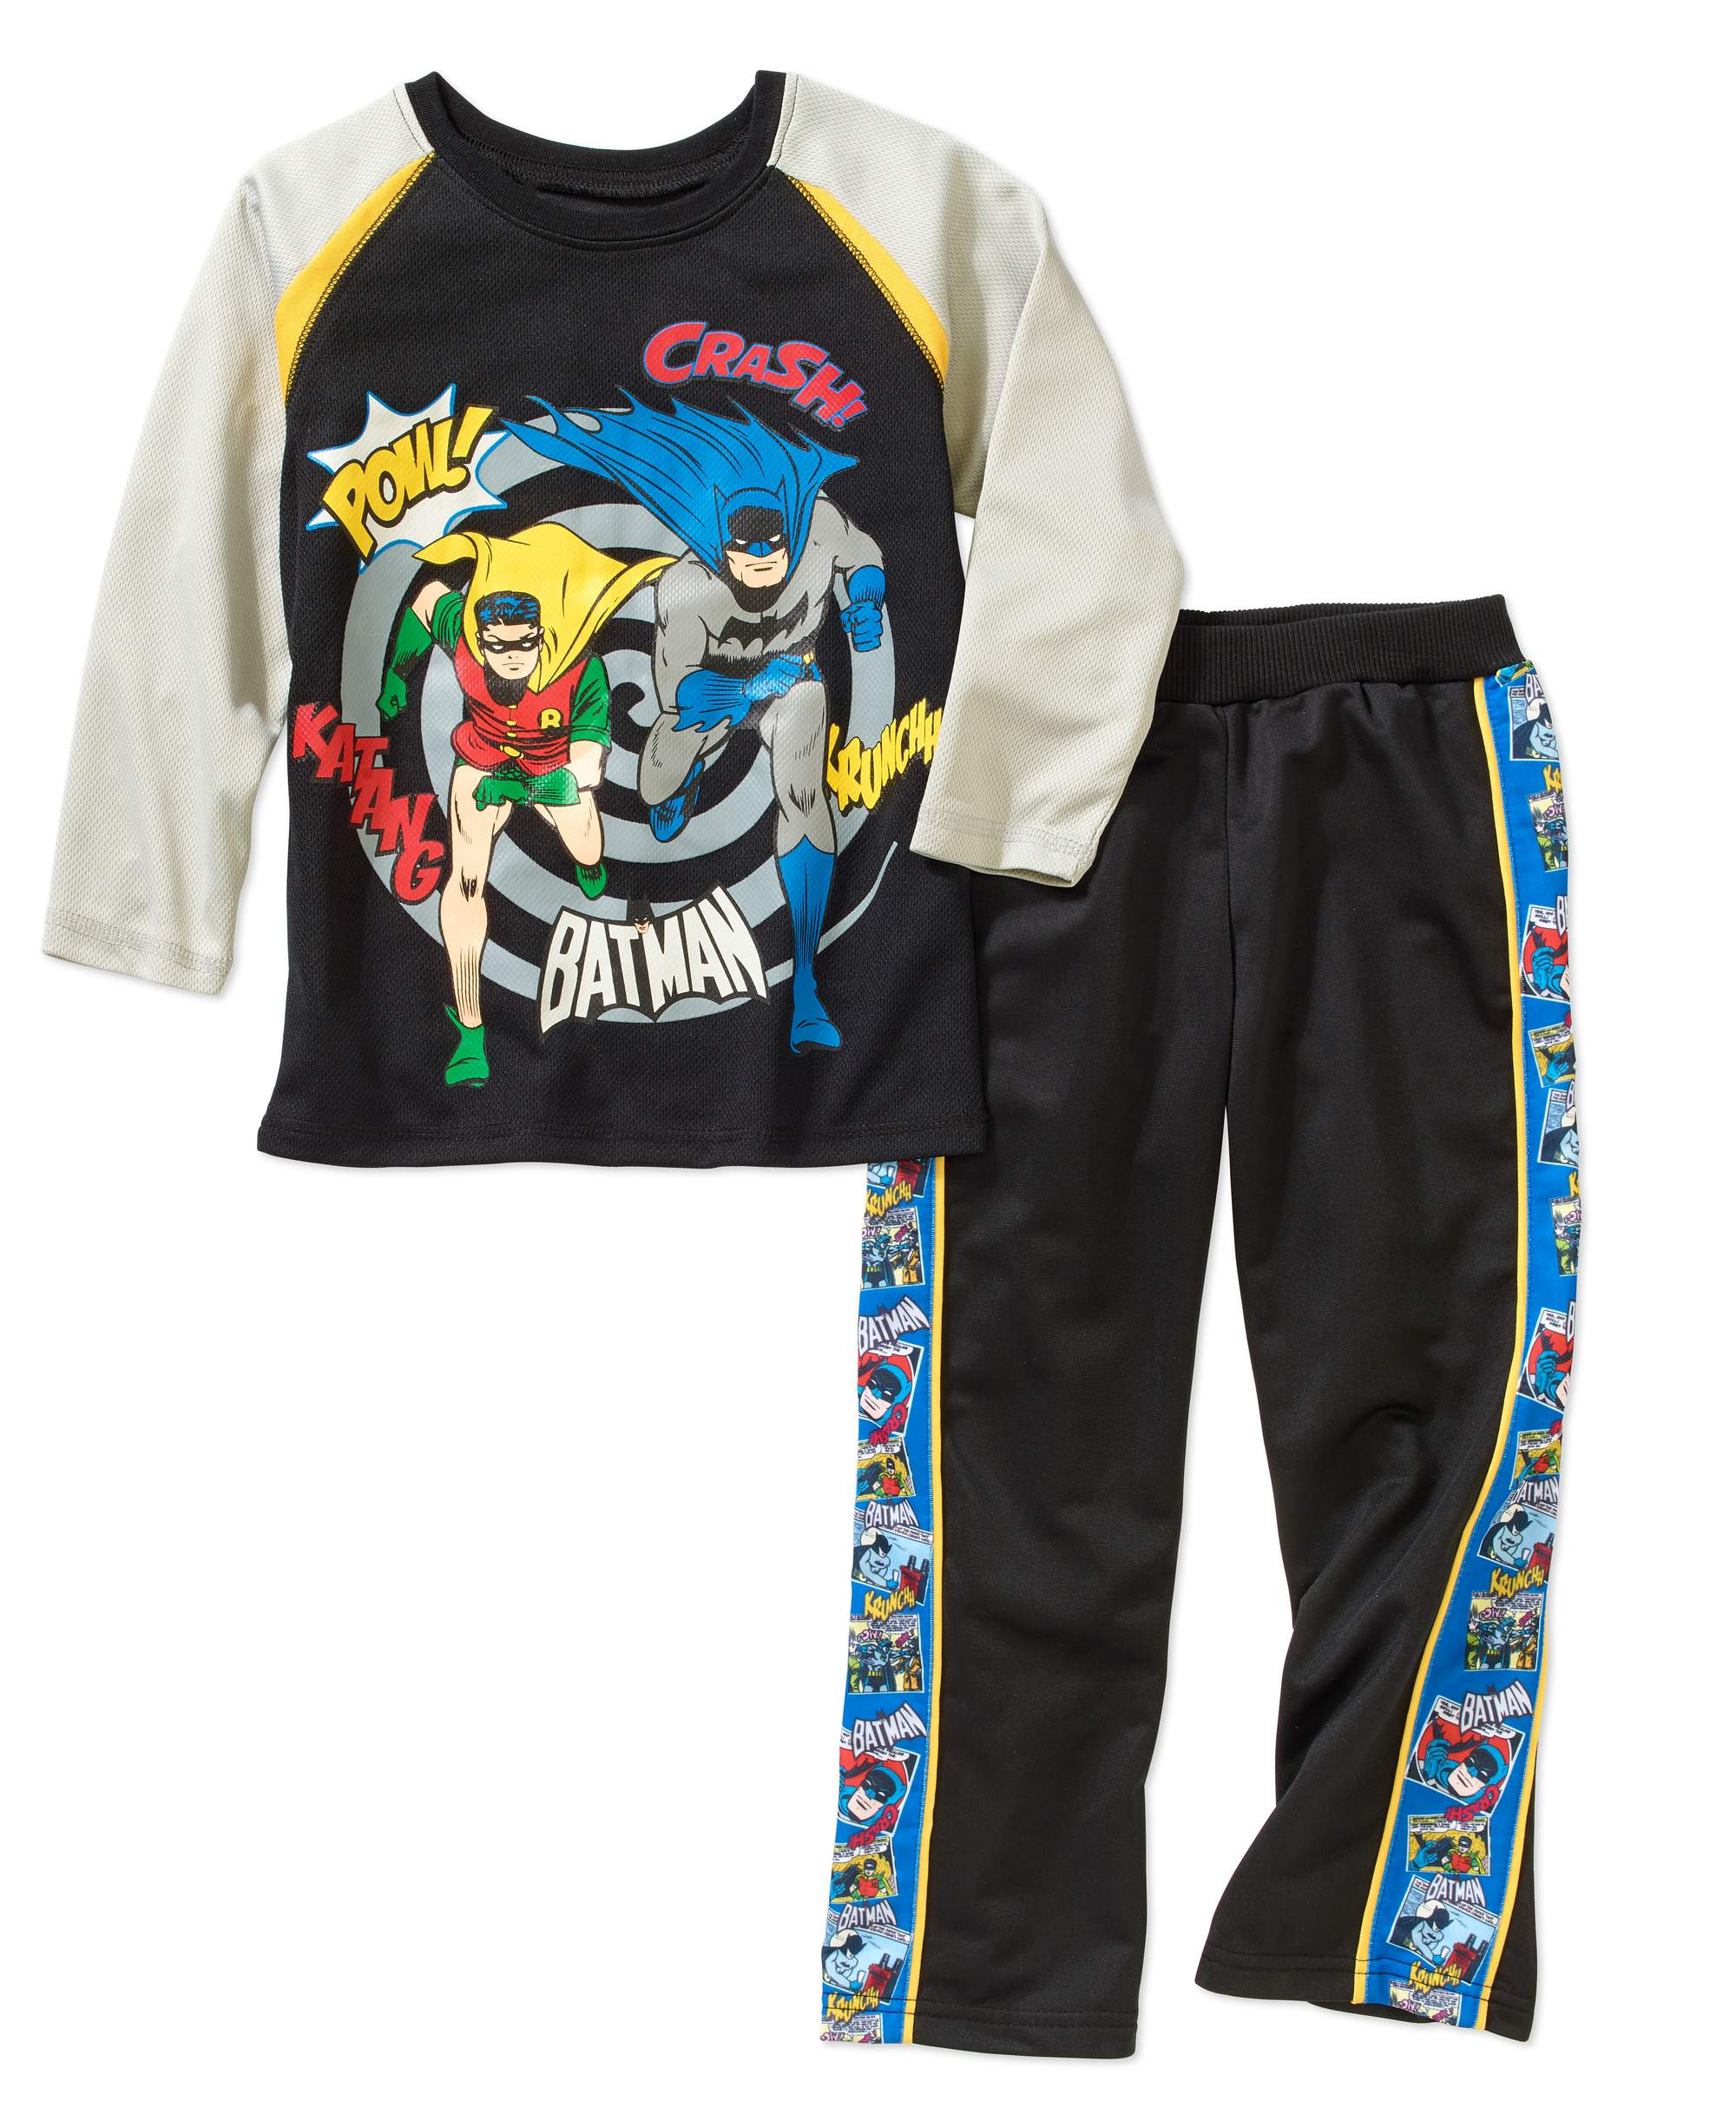 Batman Boys' Long Sleeve Graphic T-Shirt And Sweatpant Set by